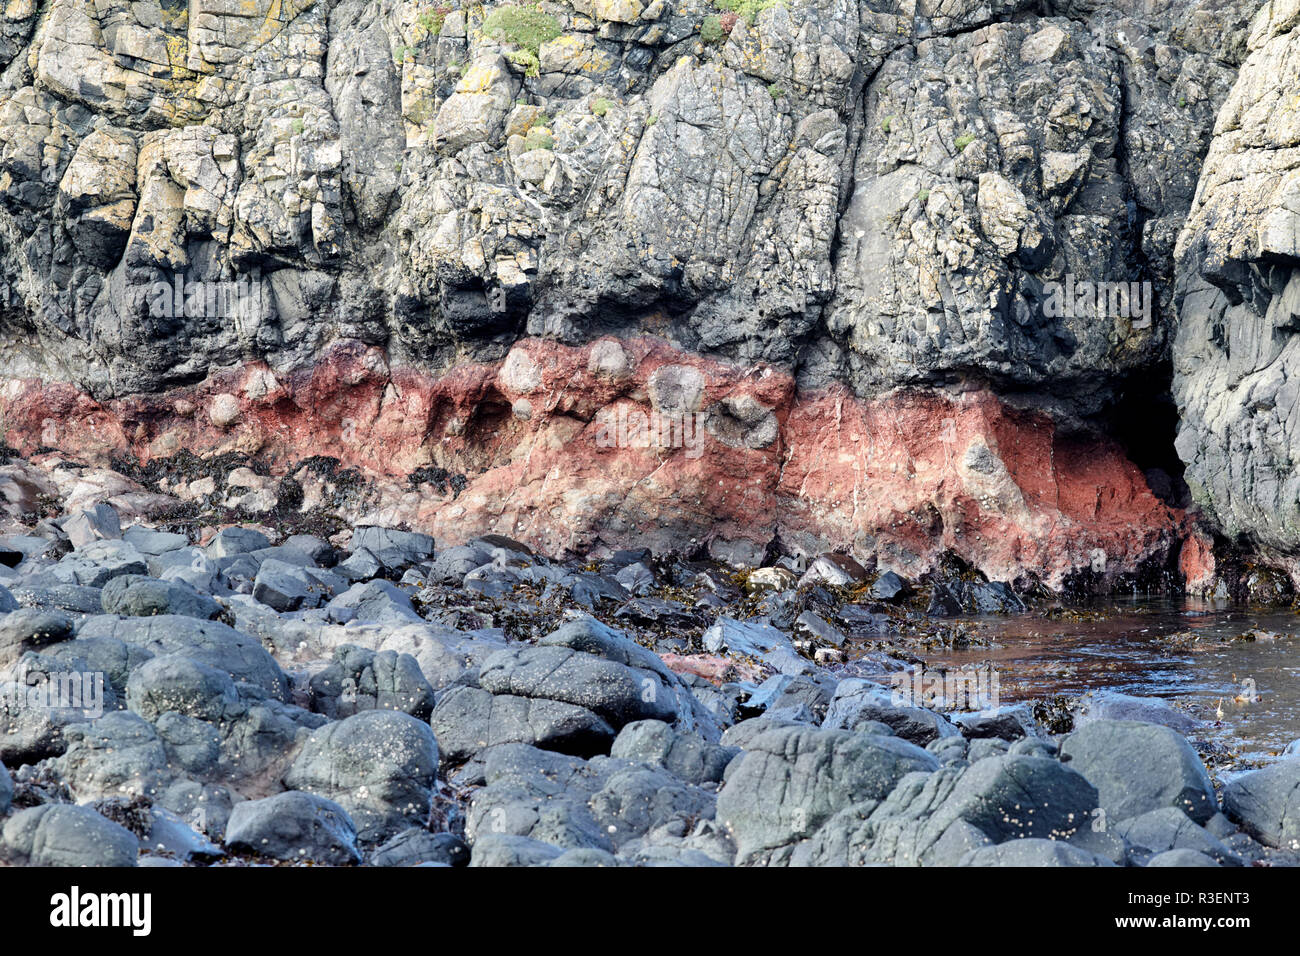 strata of downfaulted basalt rock layers including red band formed of buried ashes Ballintoy county antrim northern ireland - Stock Image